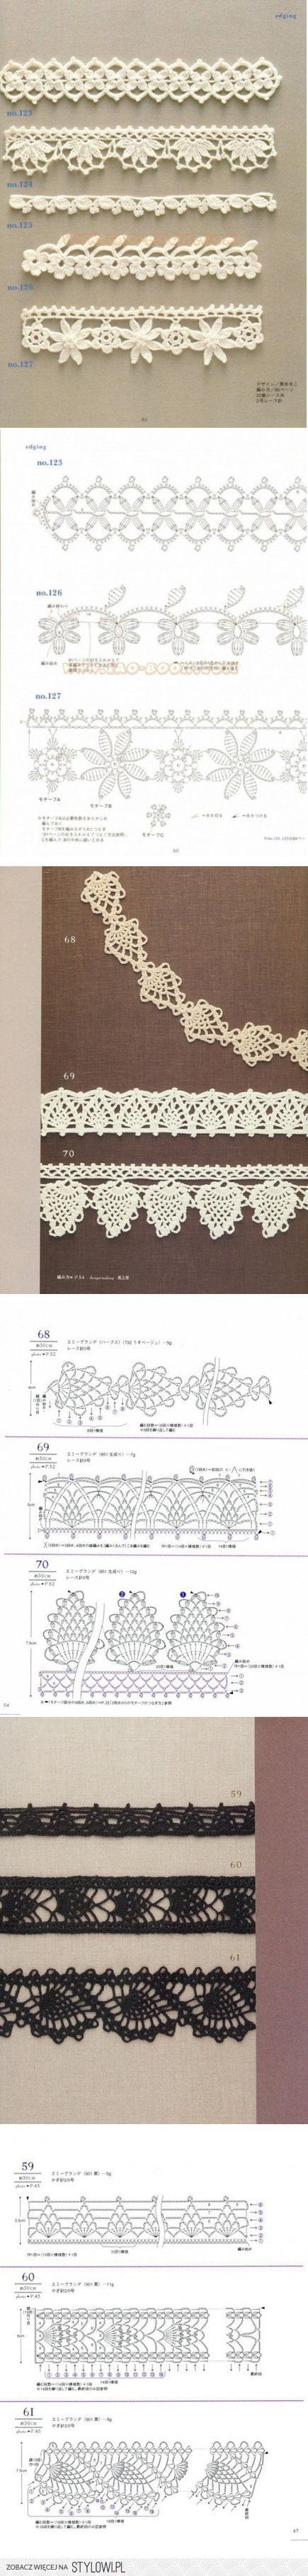 Lace Crochet Edging with Chart Diagram Pattern More